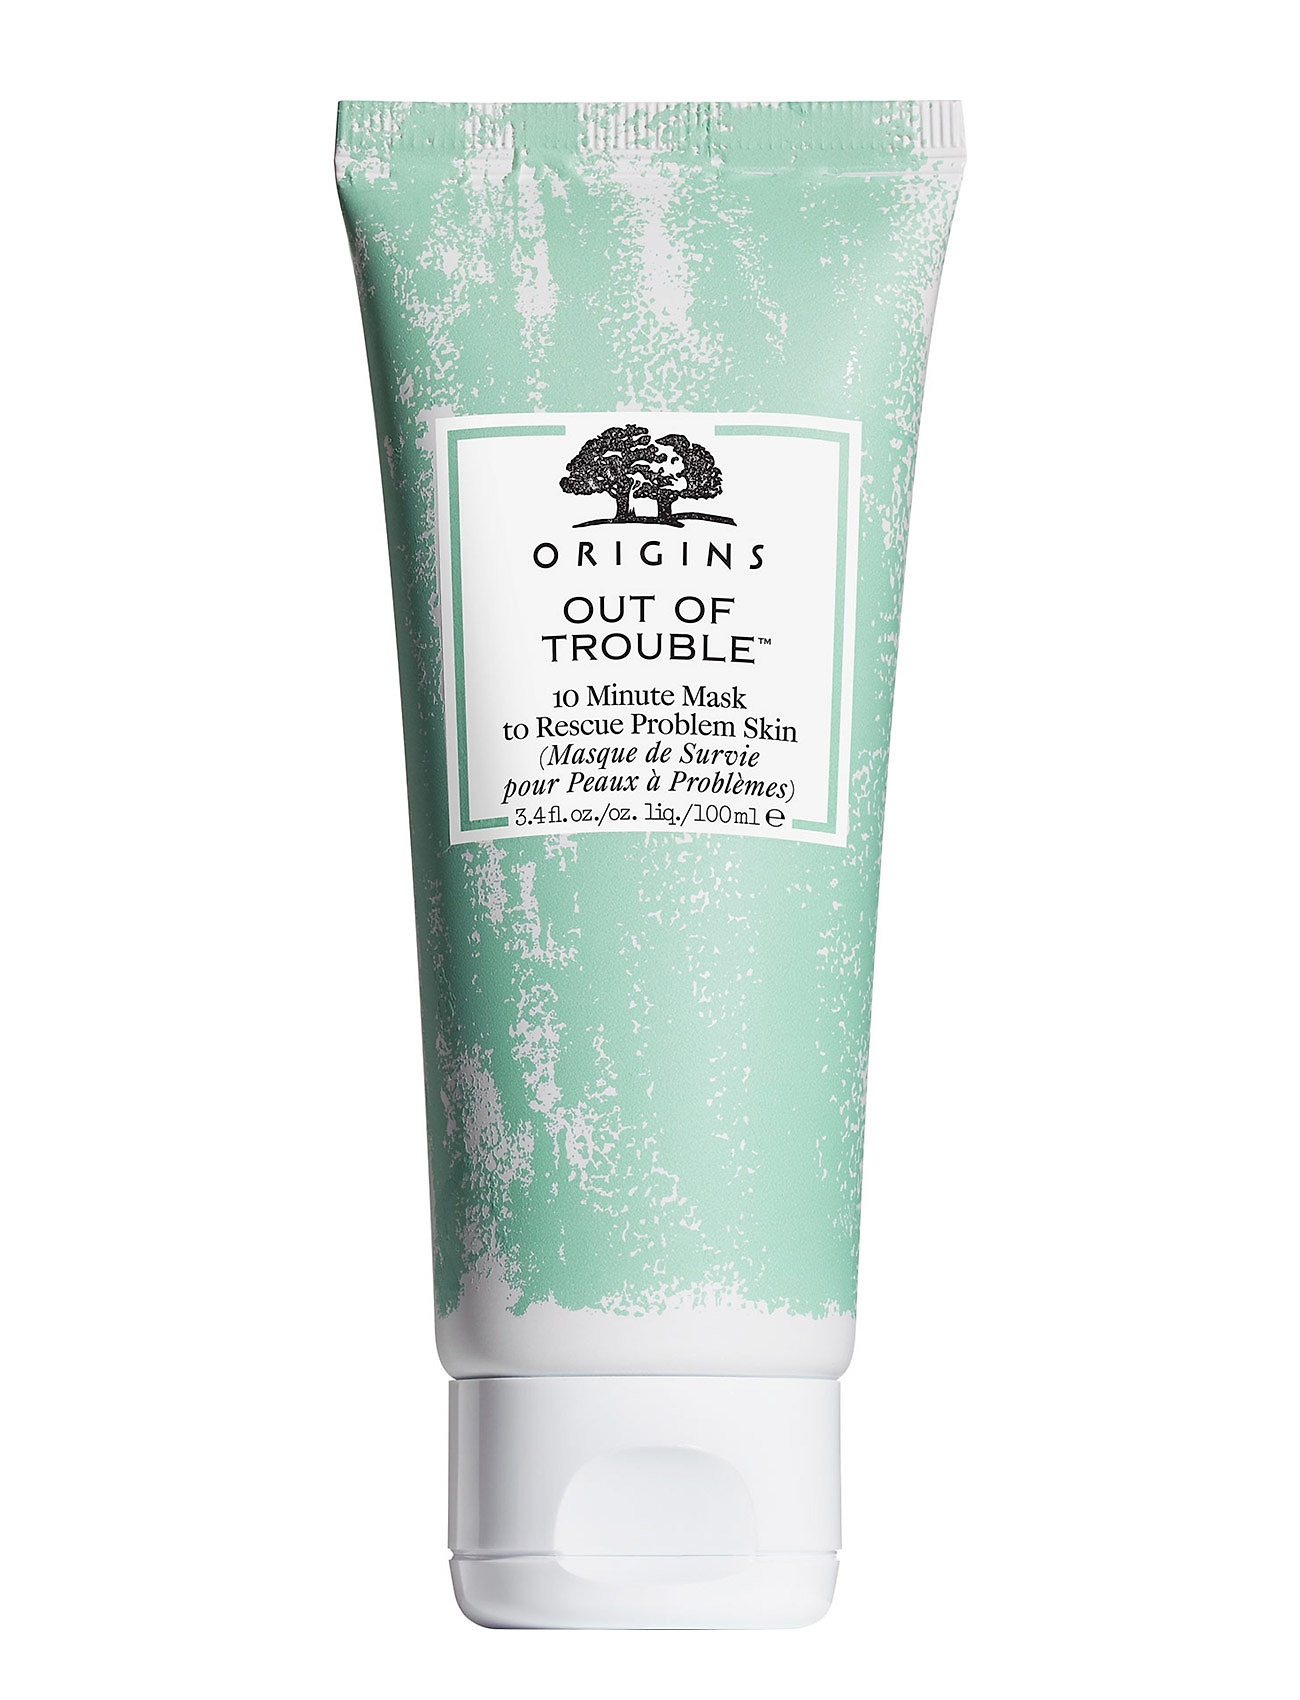 Out of troubleâ® 10 minute mask to rescue problem skin fra origins på boozt.com dk